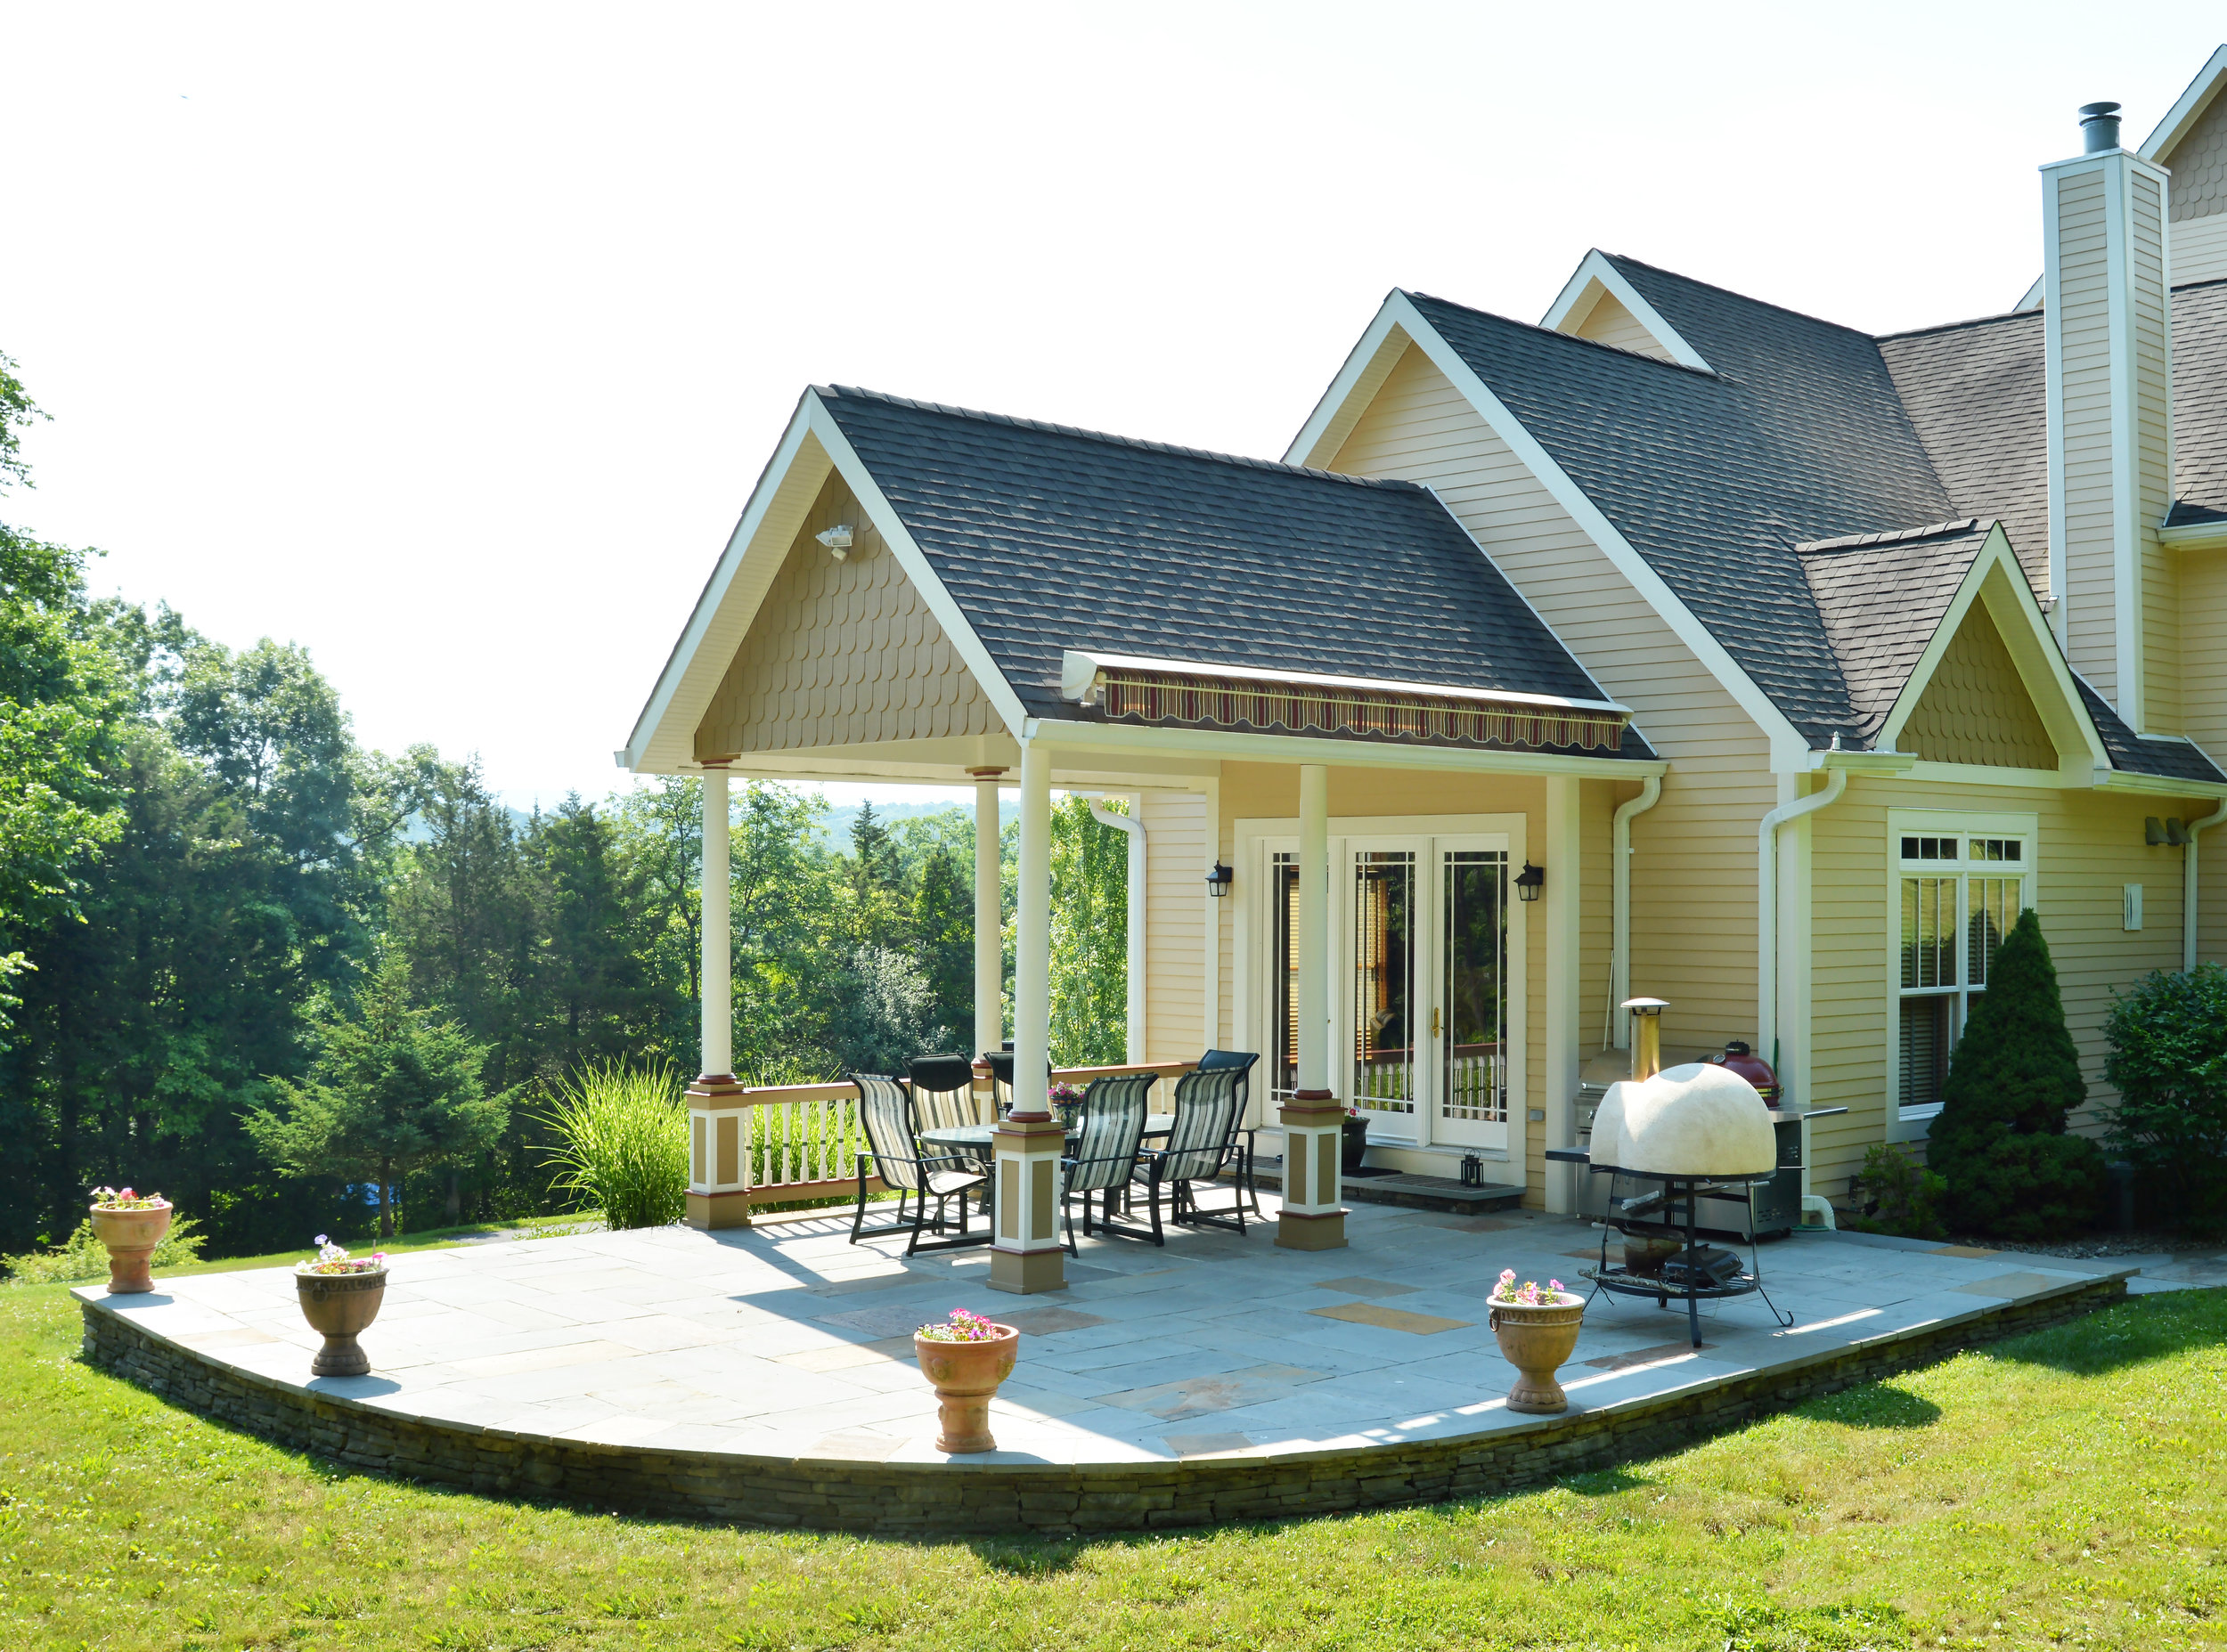 Make the Most of Your Monroe, NY, Backyard Deck with These Landscaping Ideas